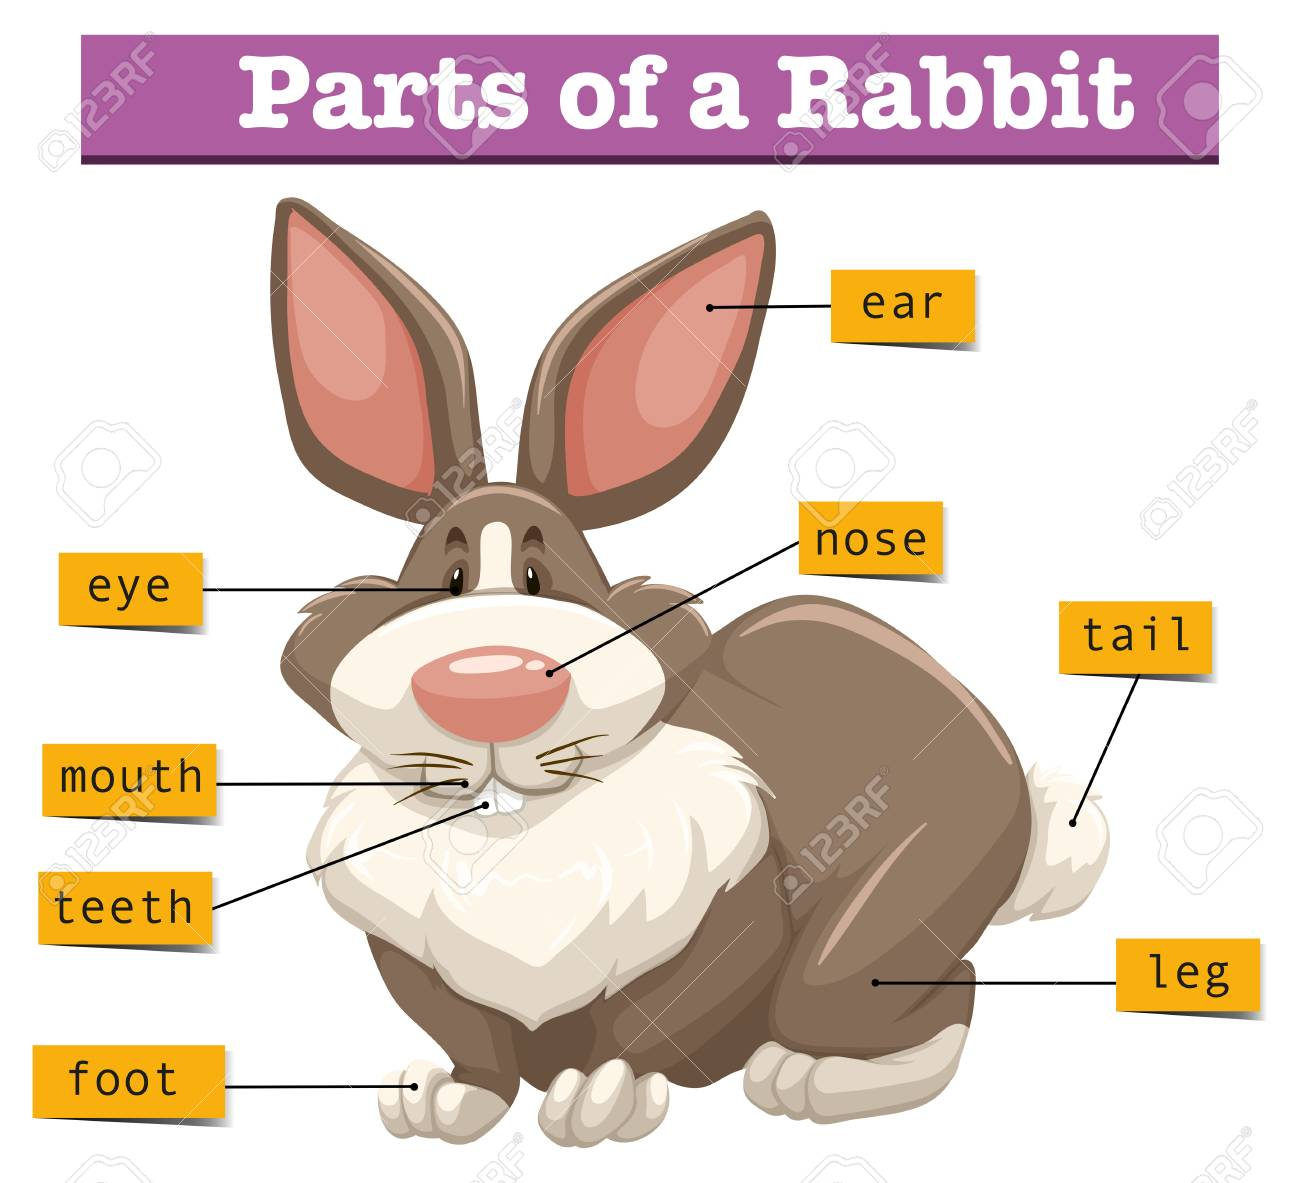 Anatomy Of Cute Rabbit Illustration Royalty Free Cliparts, Vectors ...